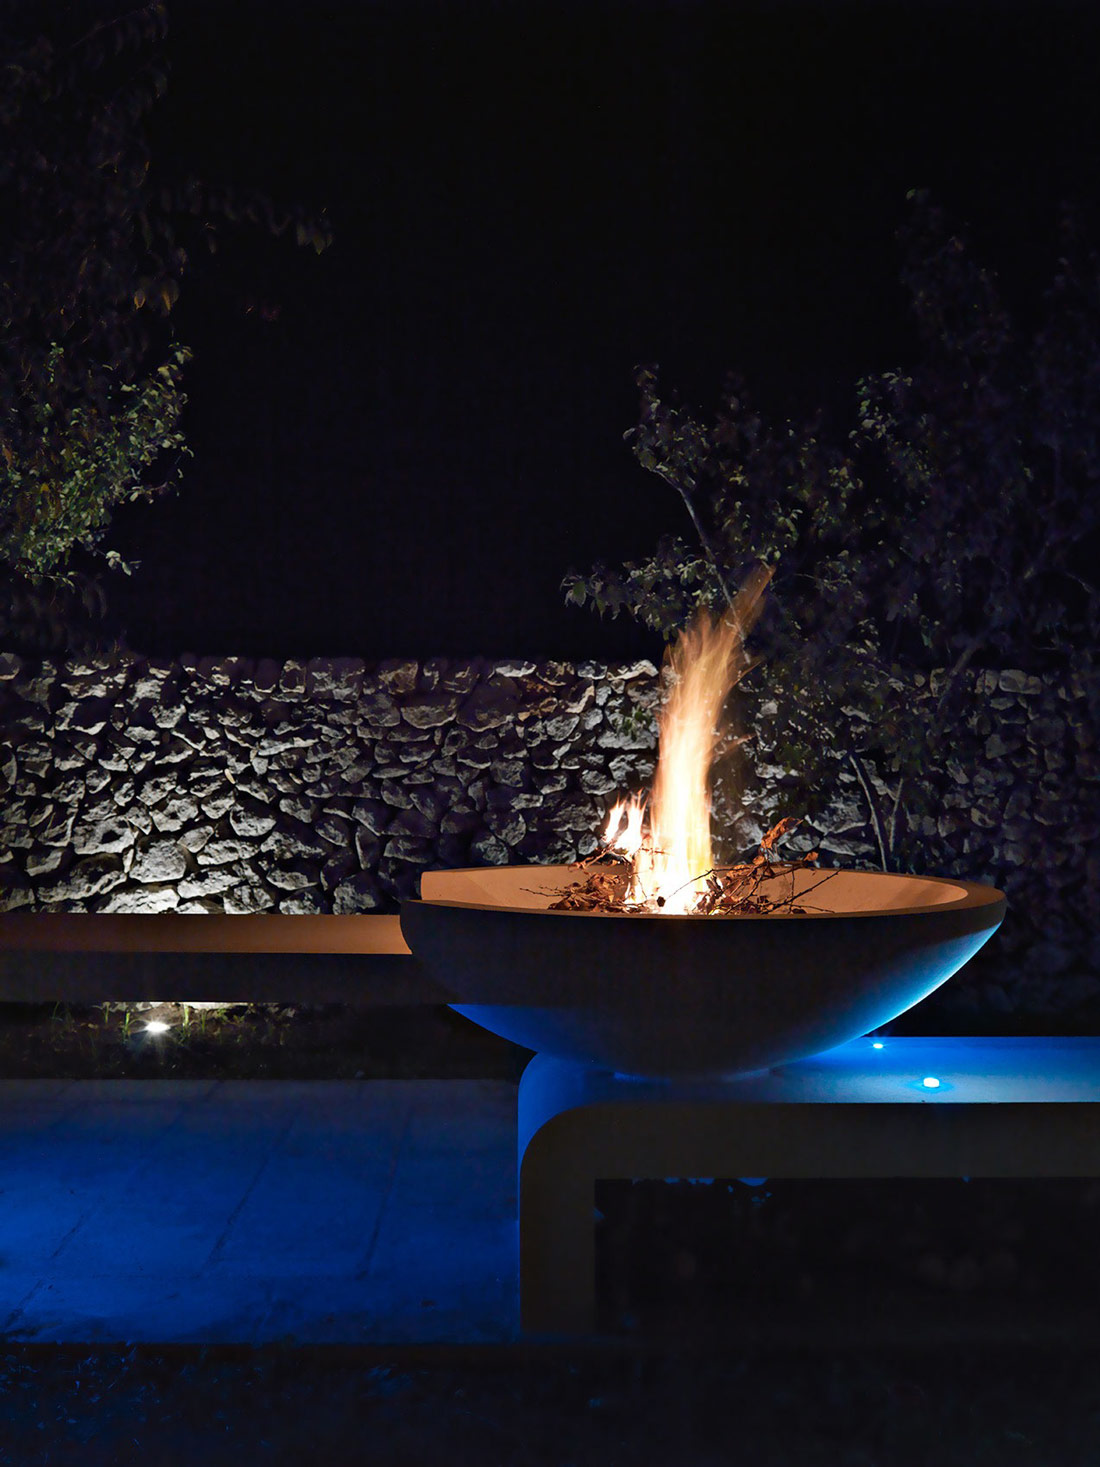 Fire Pit, Blue Lighting, Relais Masseria Capasa Hotel in Martano, Italy